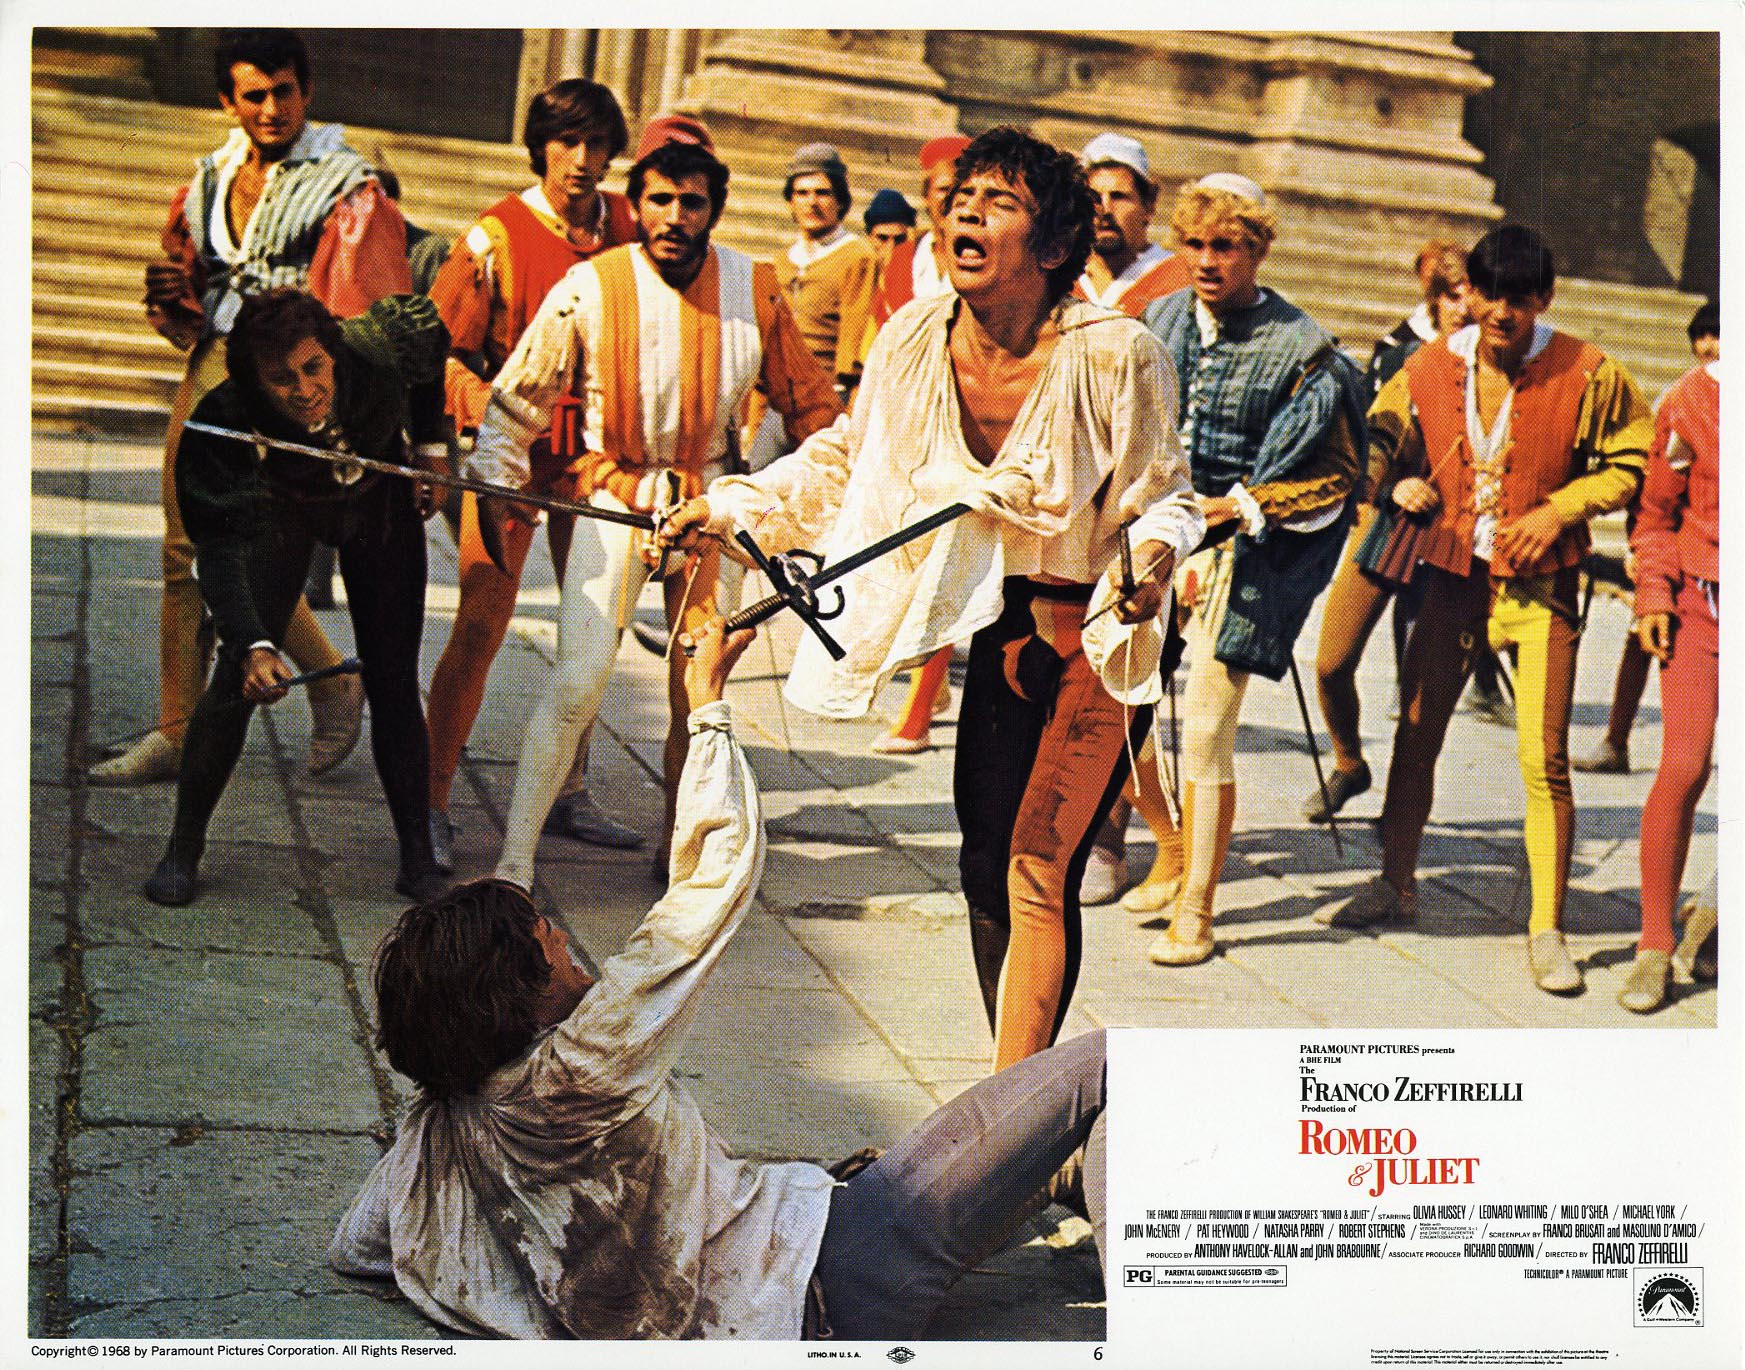 romeo and juliet fight scene essay The fight scene from romeo and juliet this research paper critiques the famous fight scene bewteen mercutio and tybalt, as well a two film adaptations, zefferelli's 1968 film and luhman's 1996 version.